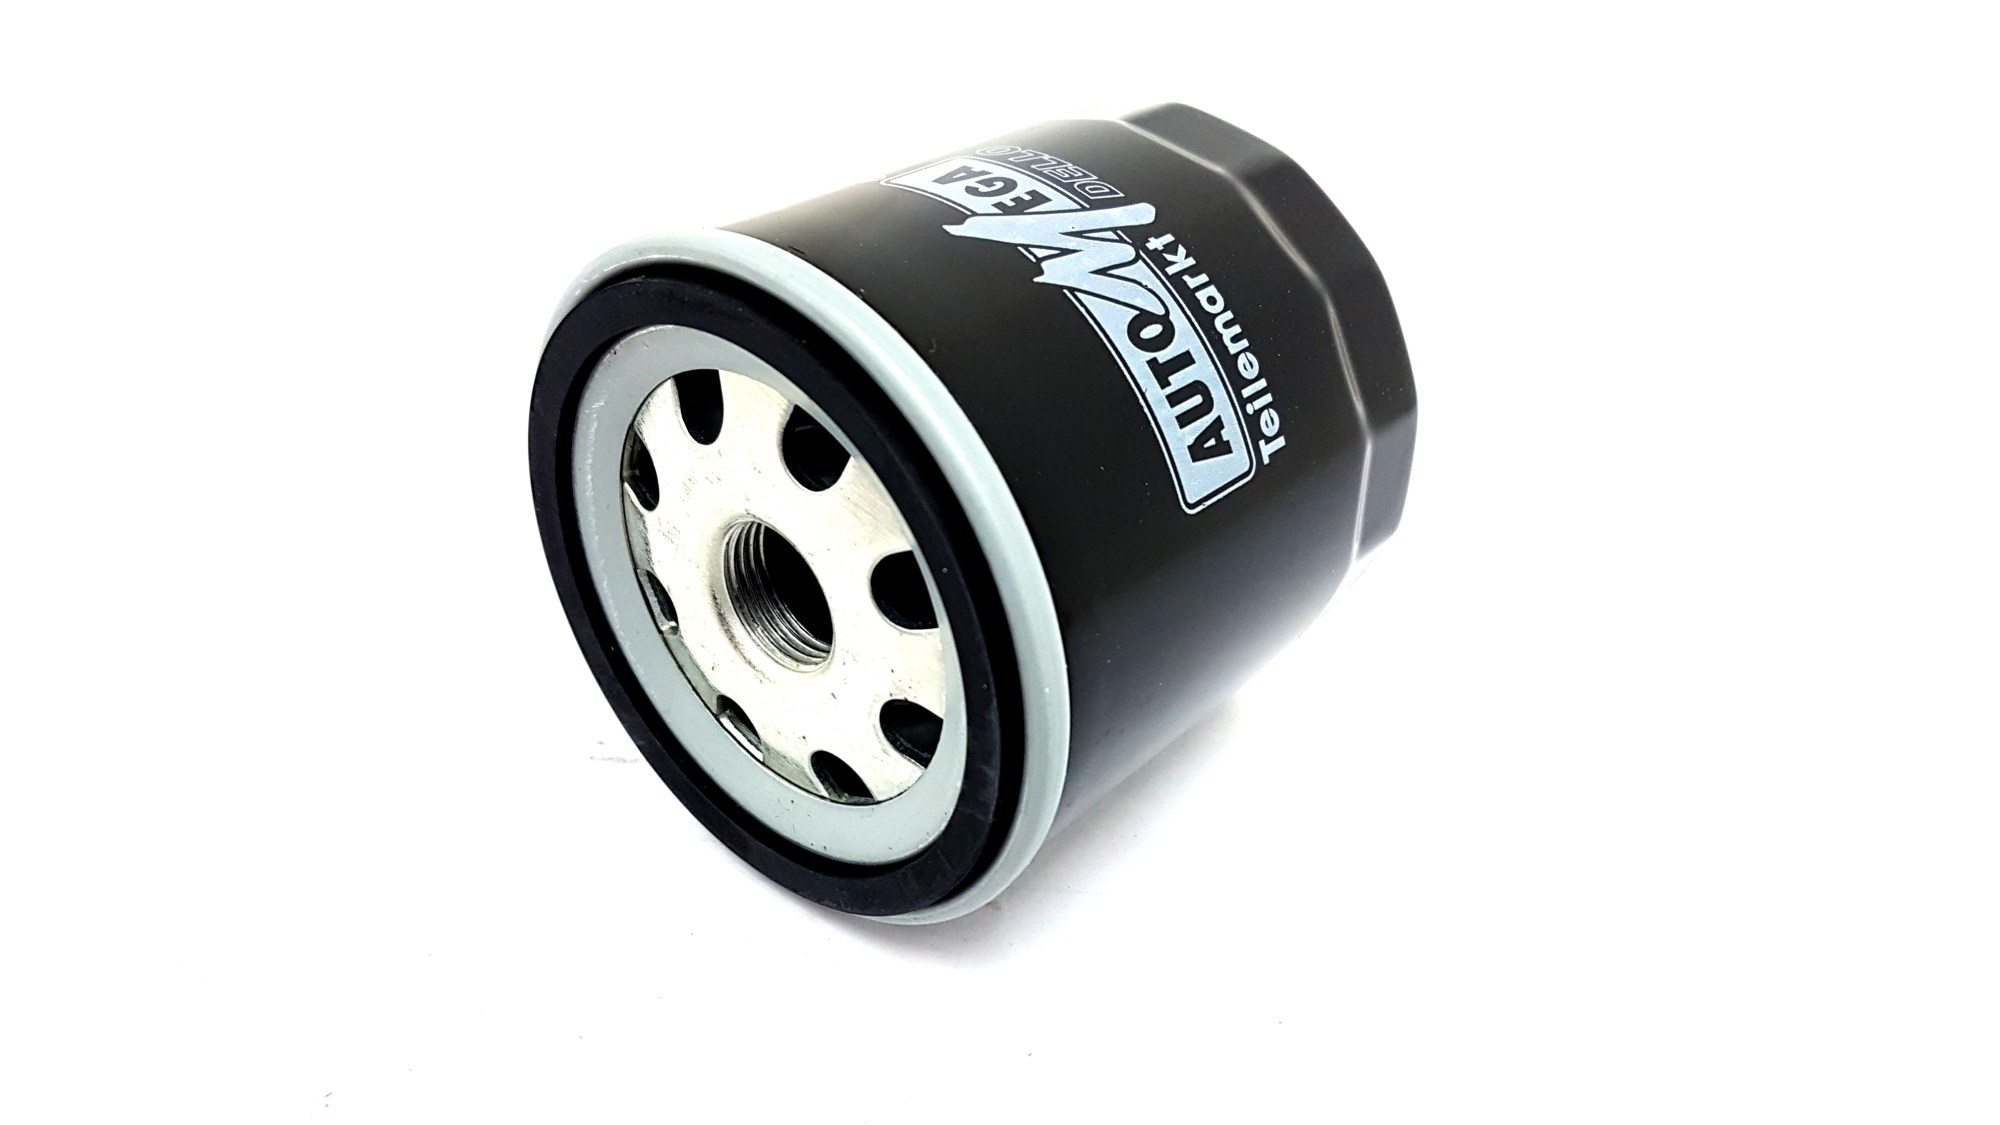 hight resolution of oil filter longlife x93 metric thread by automega